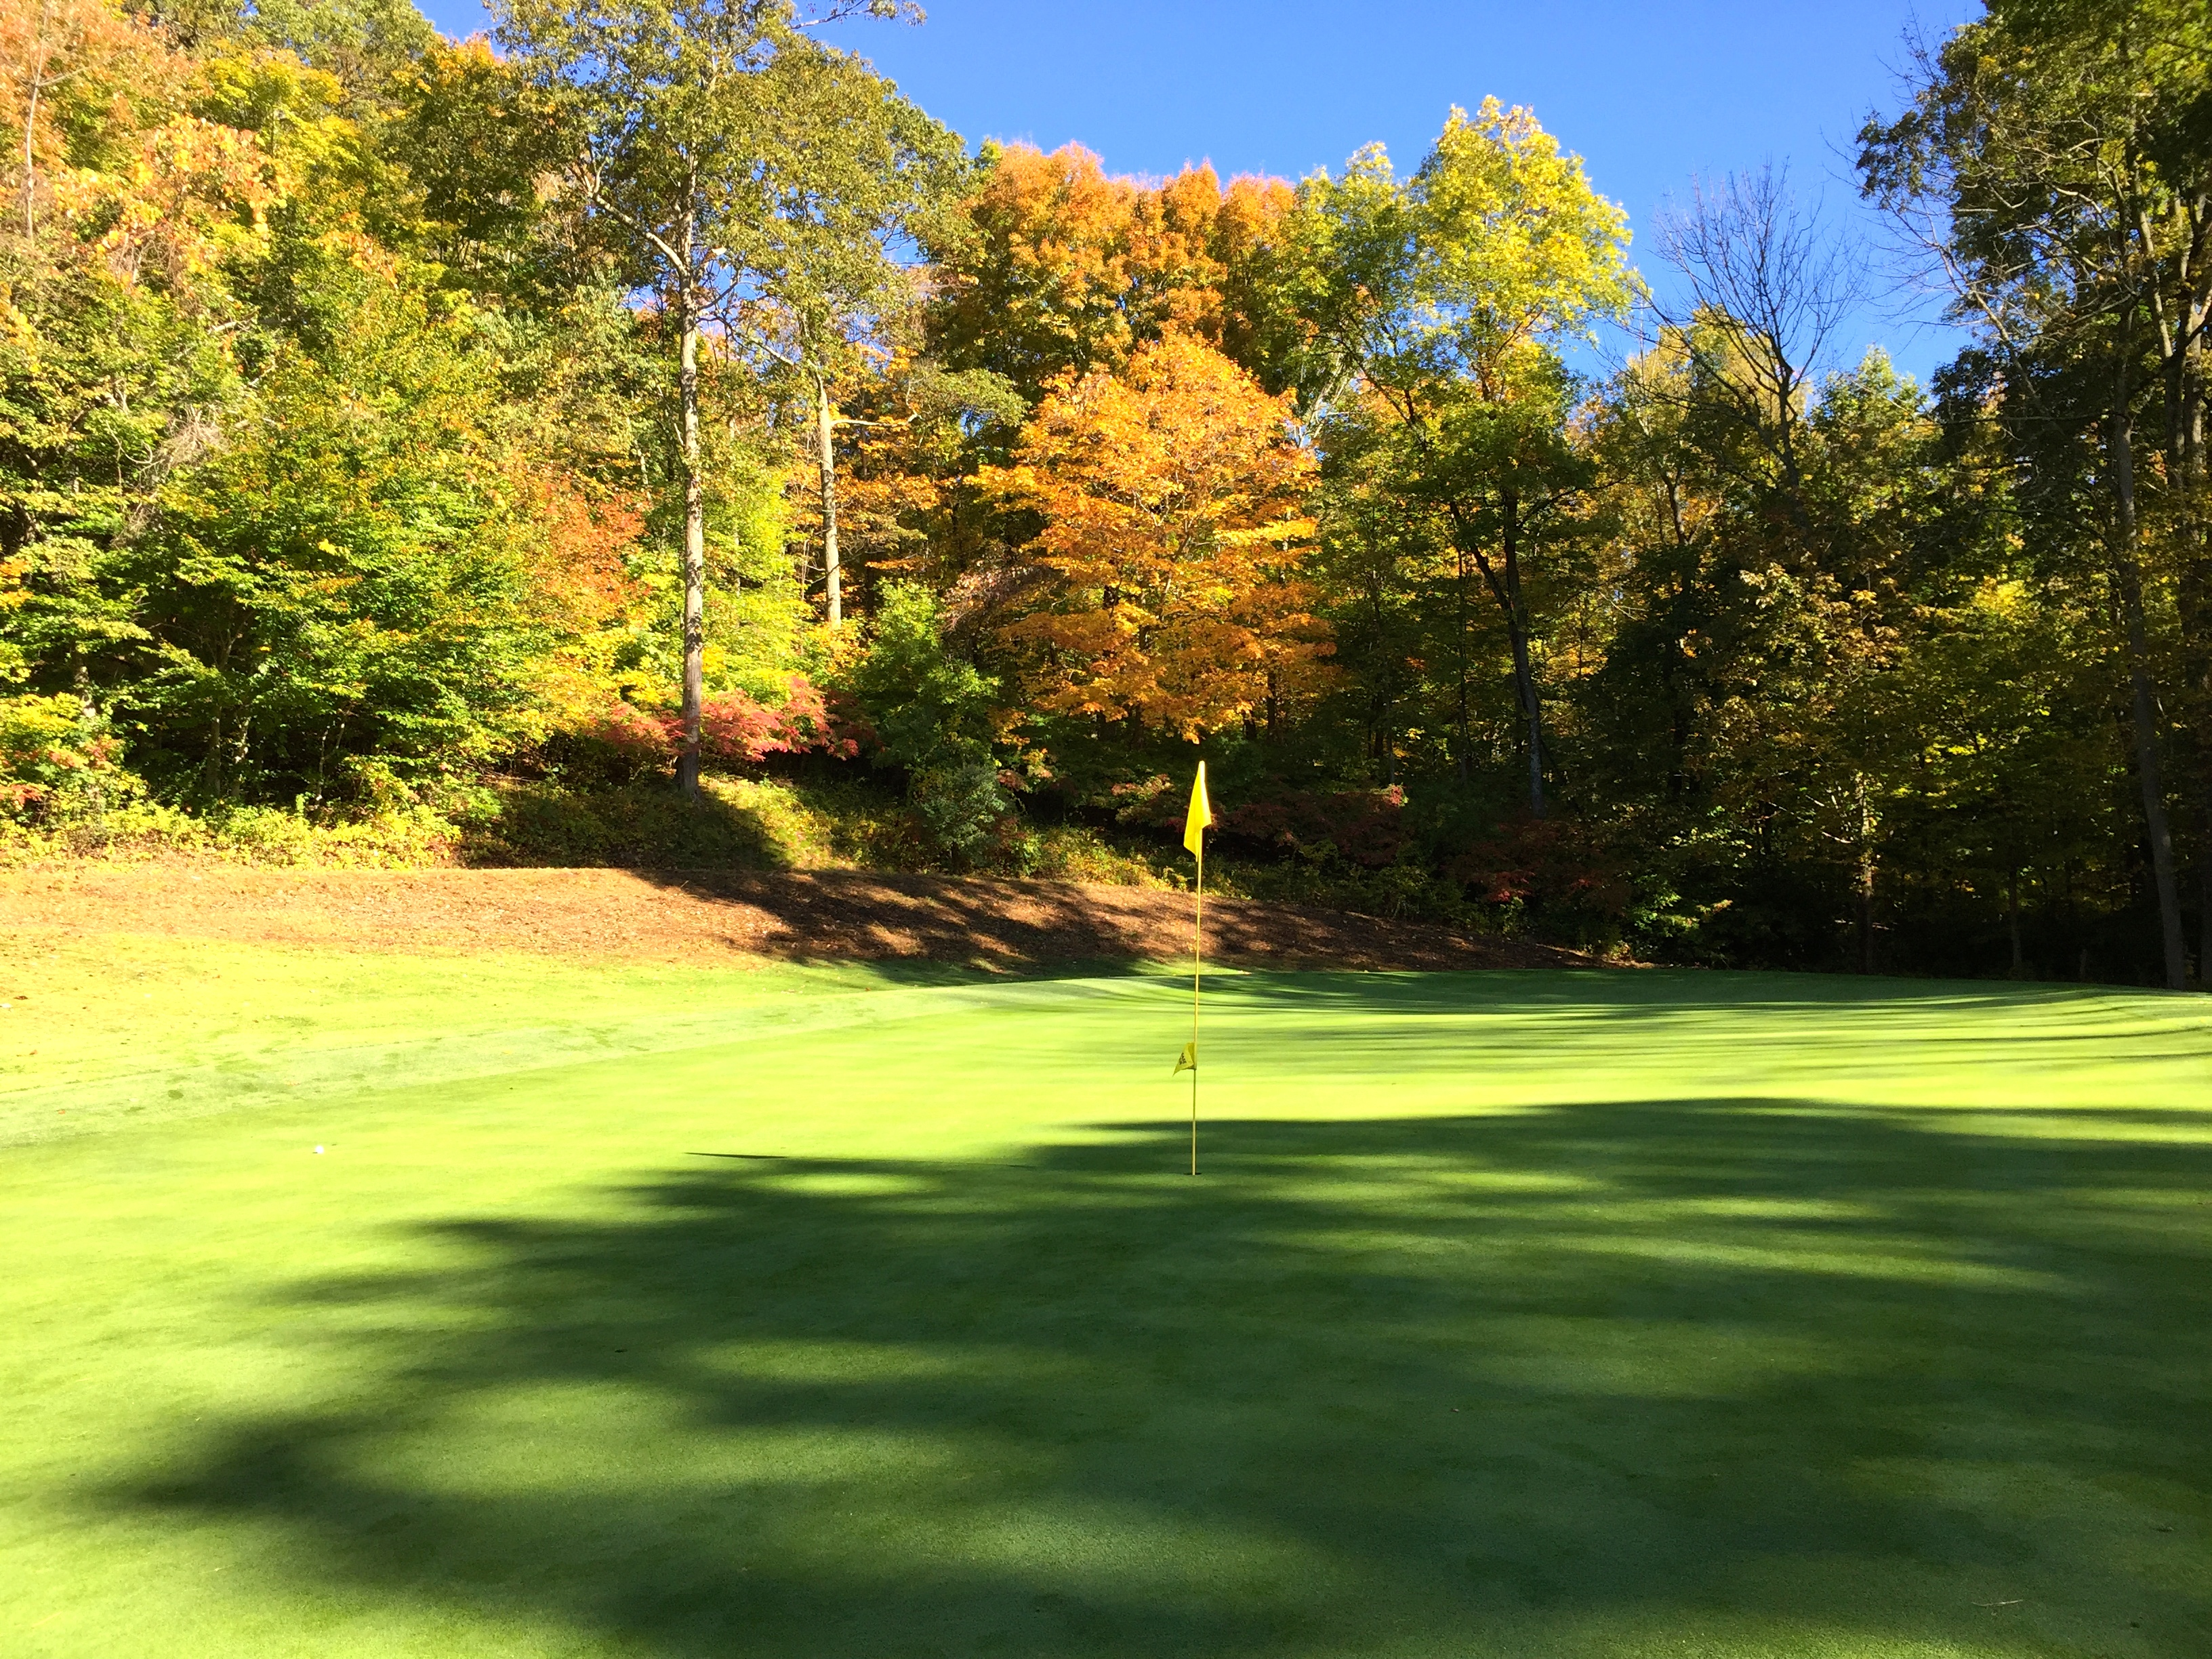 fall, autumn golf